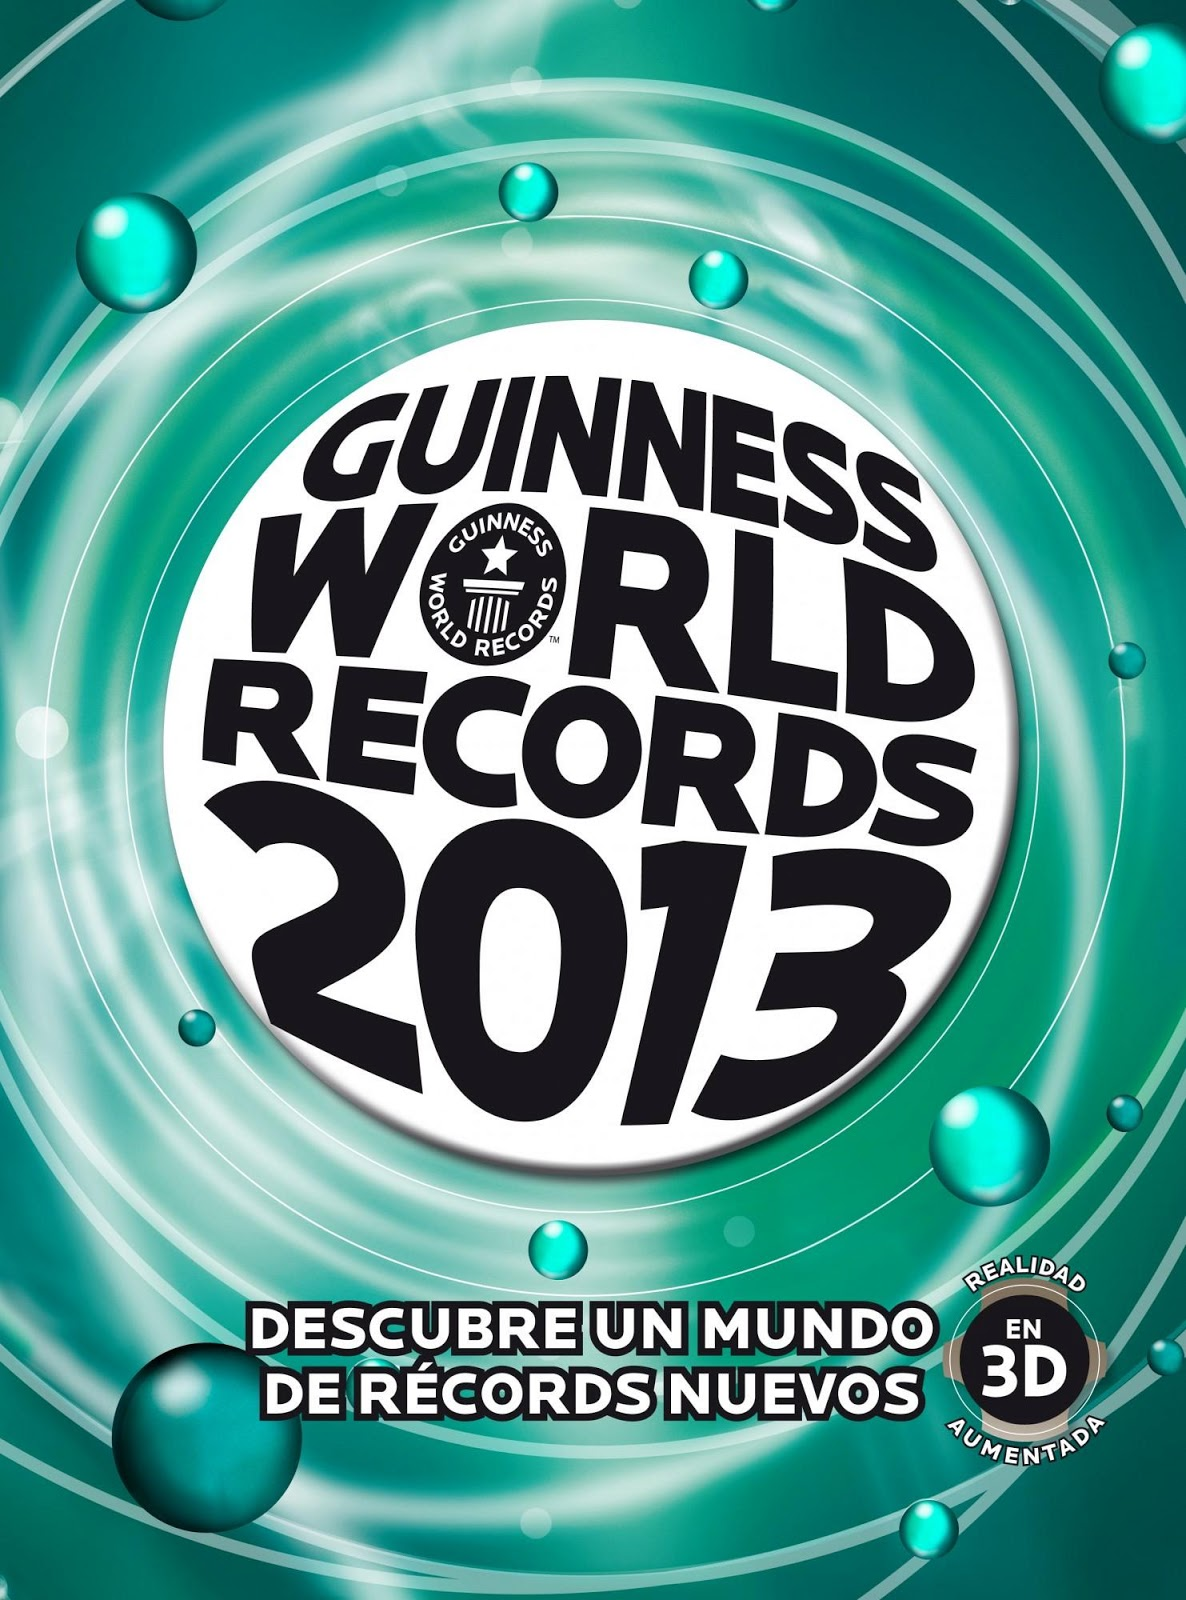 Cerisier Bois Puant : Guinness World Records